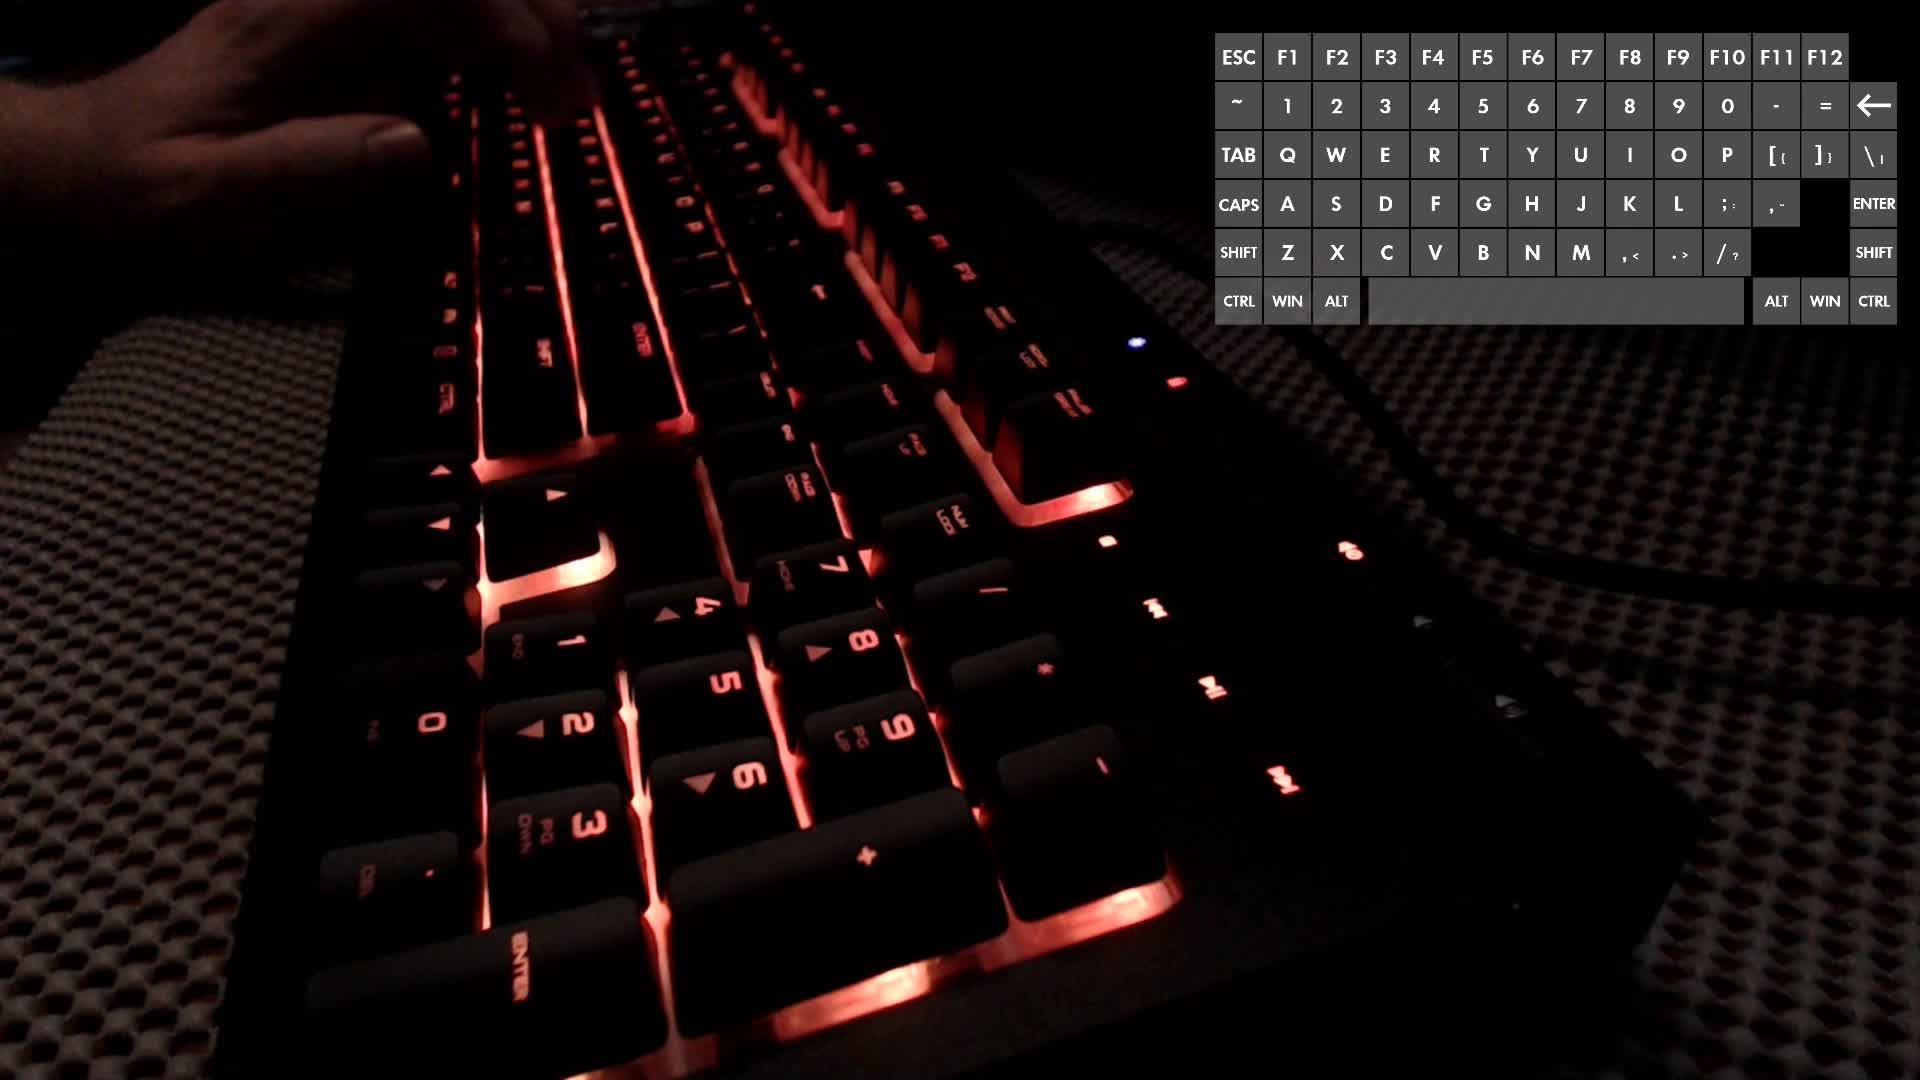 Corsair Rgb Led Keyboard Gifs Search | Search & Share on Homdor